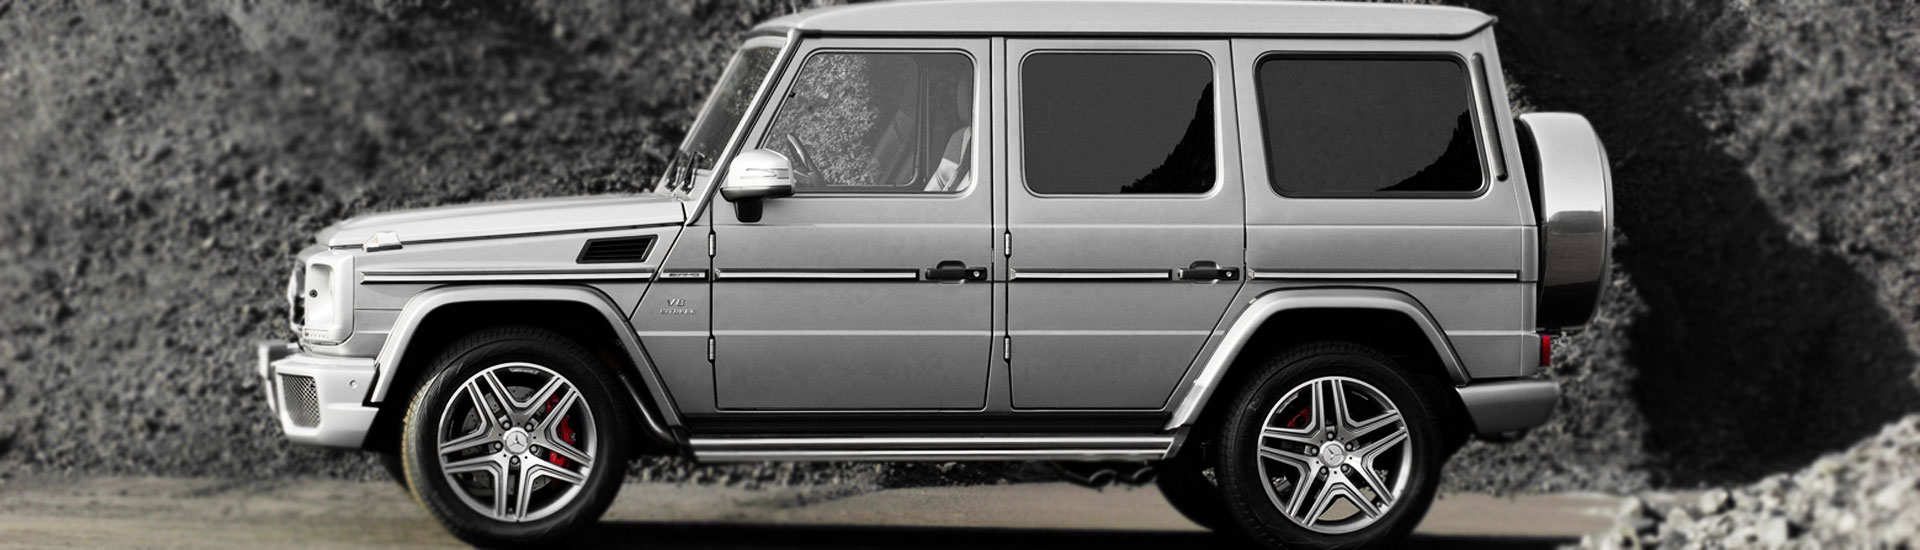 Mercedes benz g class window tint kit diy precut for Mercedes benz window tint